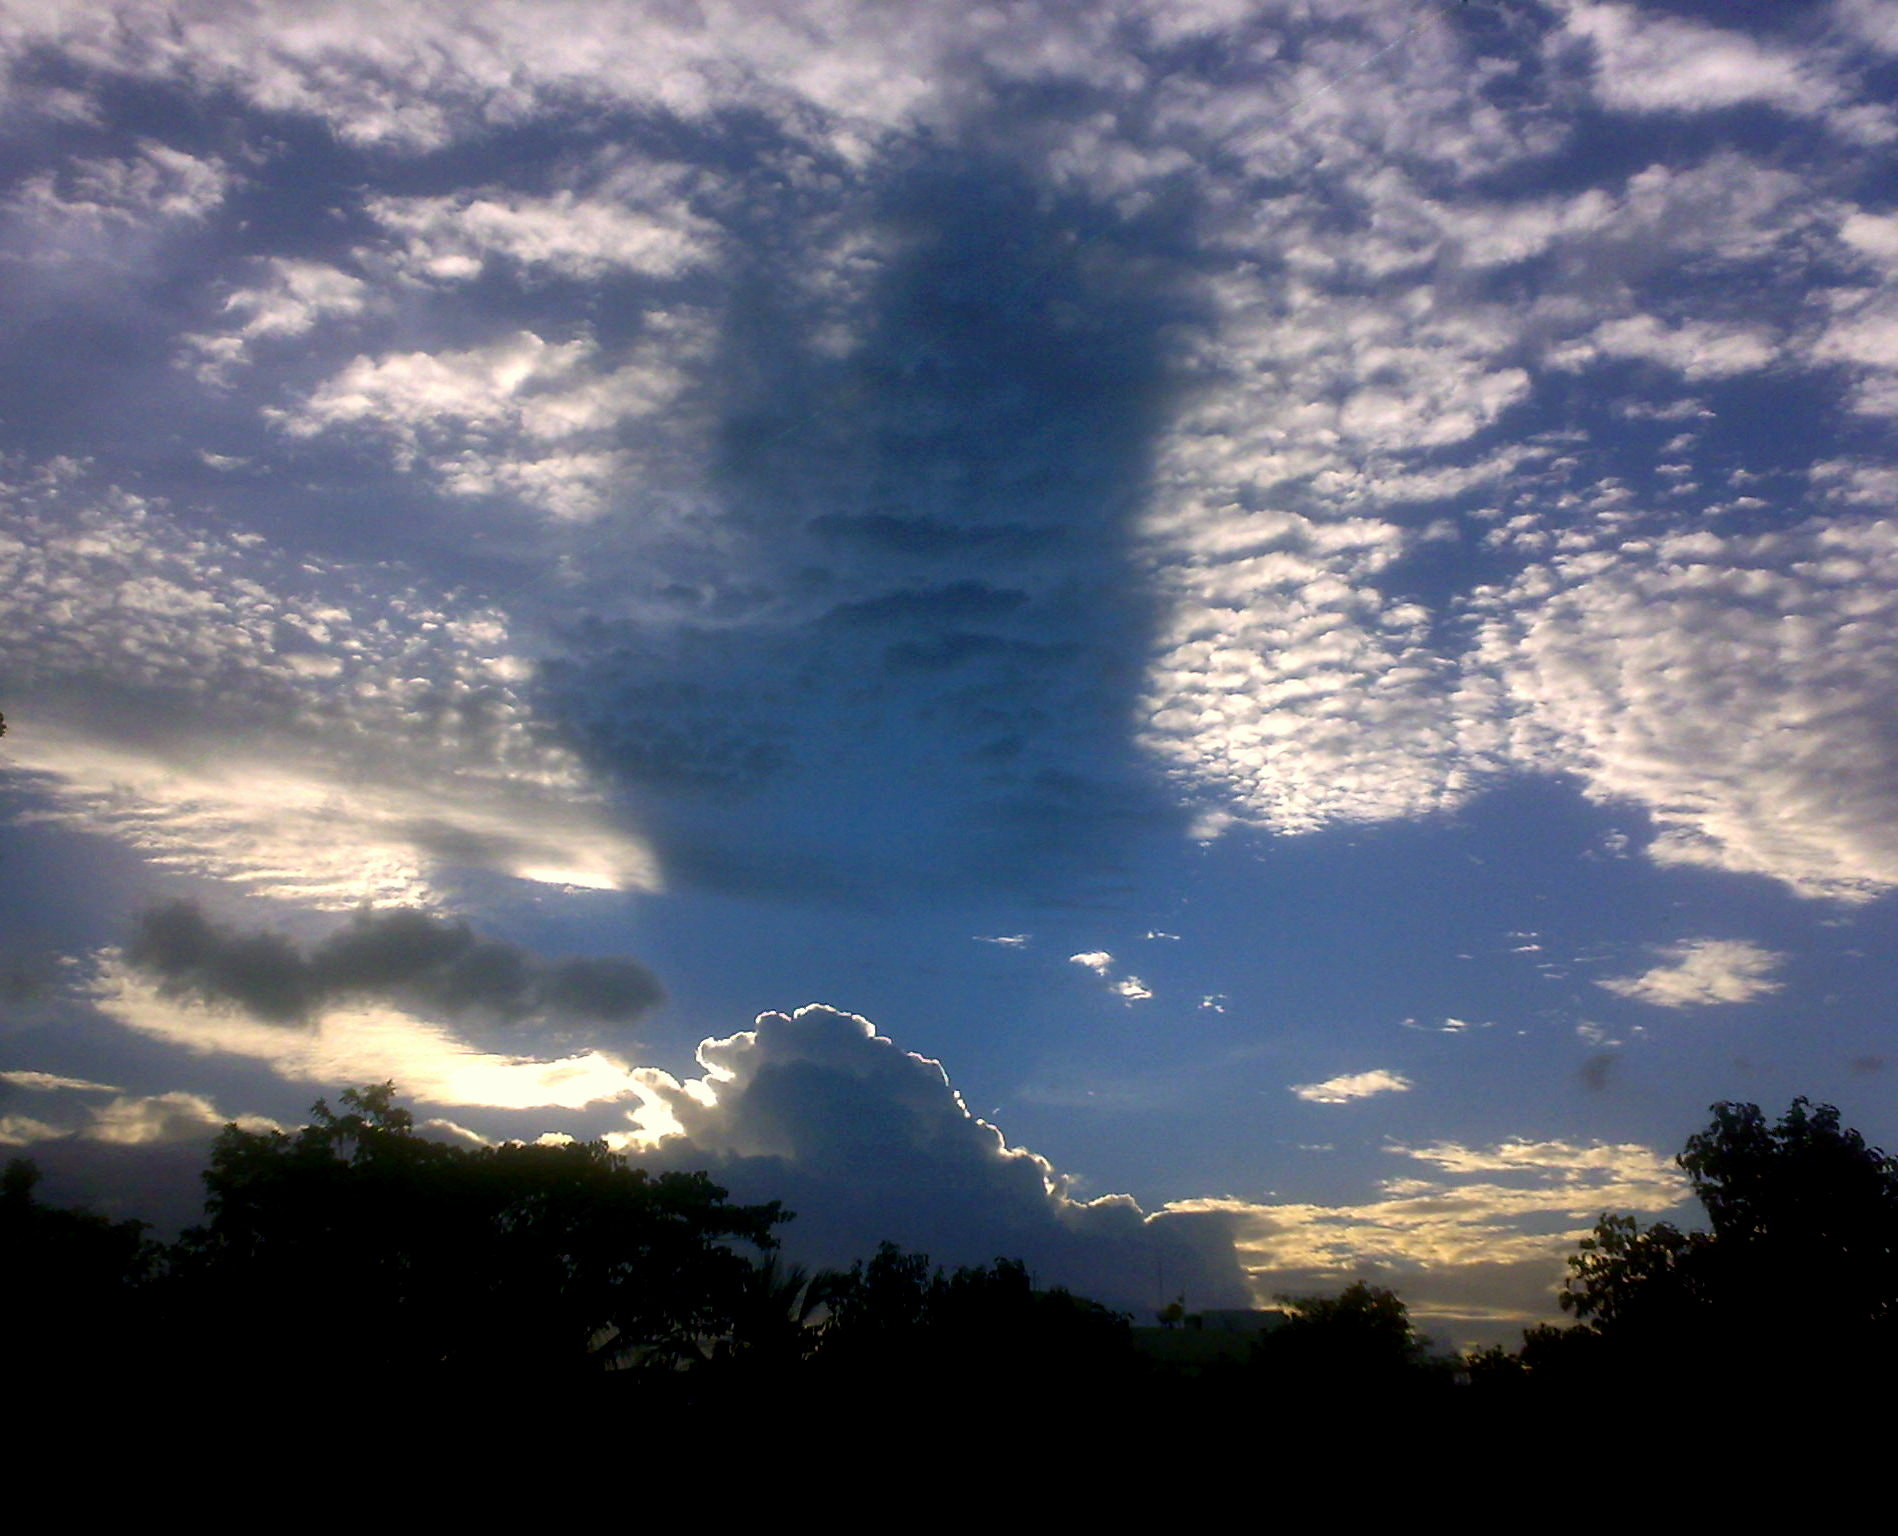 Photograph Silver Lining by Urmi Ray on 500px